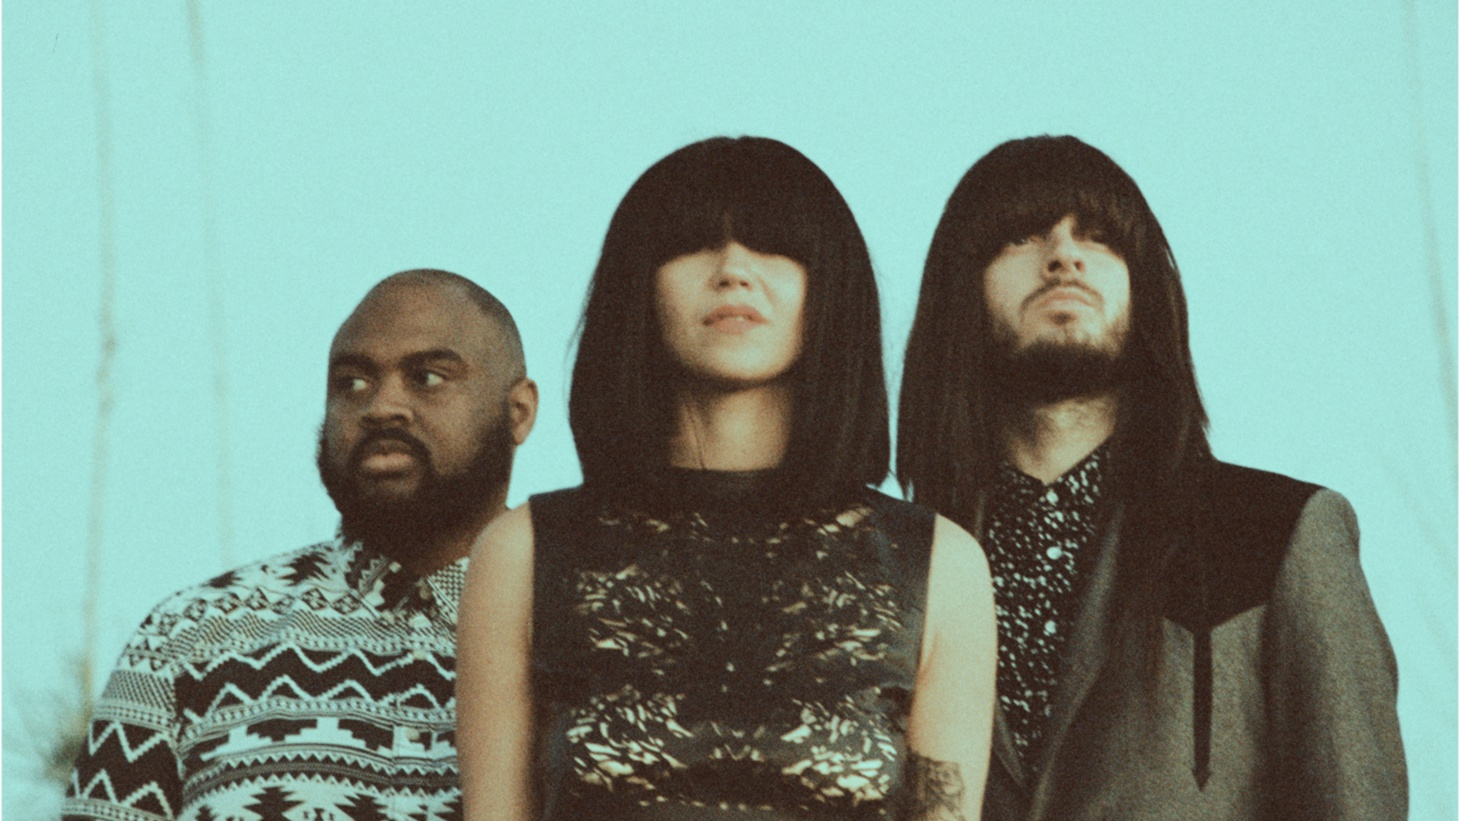 Khruangbin are a captivating trio who expands their Thai funk sound to include hints of the Middle East on their album Con Todo El Mundo.